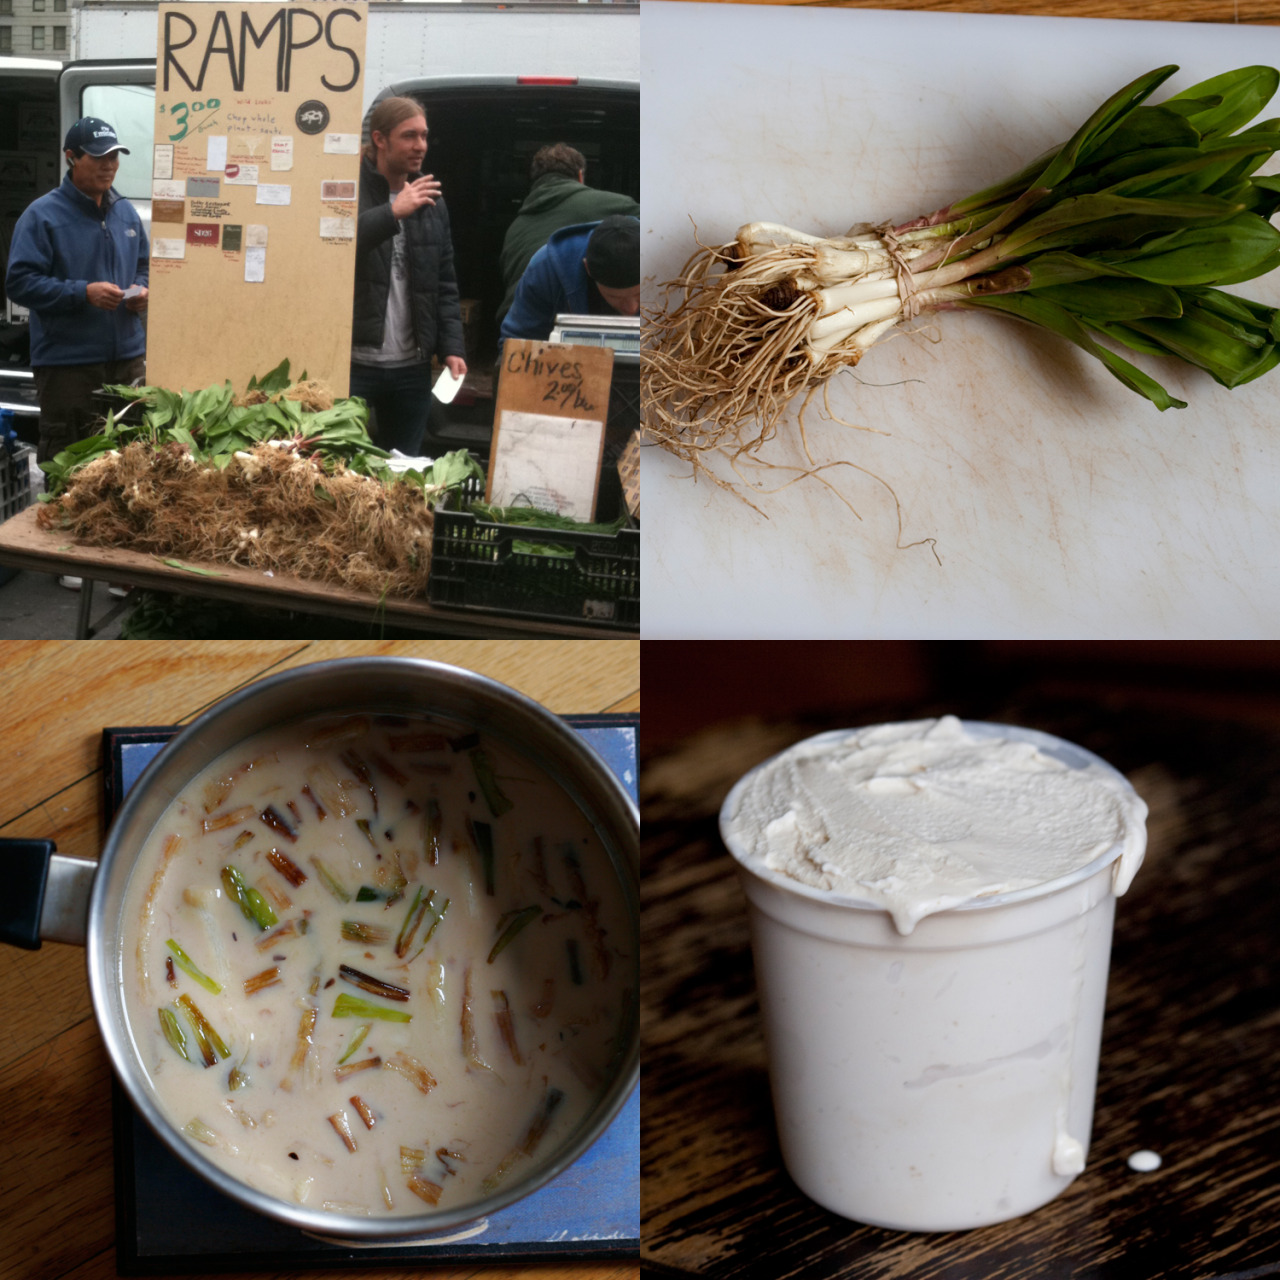 "milkmade flavor of the day: Ramps!ramps are wild leeks that are found in the northeast during a short window of spring. they taste like half-onion, half-garlic, and garner quite a frenzy when they appear at the greenmarkets this time of year. we partook in the frenzy and sweetened 'em up to make a ramps ice cream.Ramps are back at it and so are we. This one is just such a fun unexpectedly good flavor — we released it to members May 2011, flavor #37, as a THIRD OPTION in our normal two flavor-of-the-month offering. Only like 8 people opted in. One of whom said, and we quote ""That Ramps ice cream…. is insane.. I love it."" Not bad for an onion-y, garlic-y ice cream! Thanks MilkMade Member, Aaron G!    Want to get your hands on a pint? Ping us if you'd like to pick one up next week from our LES kitchen."